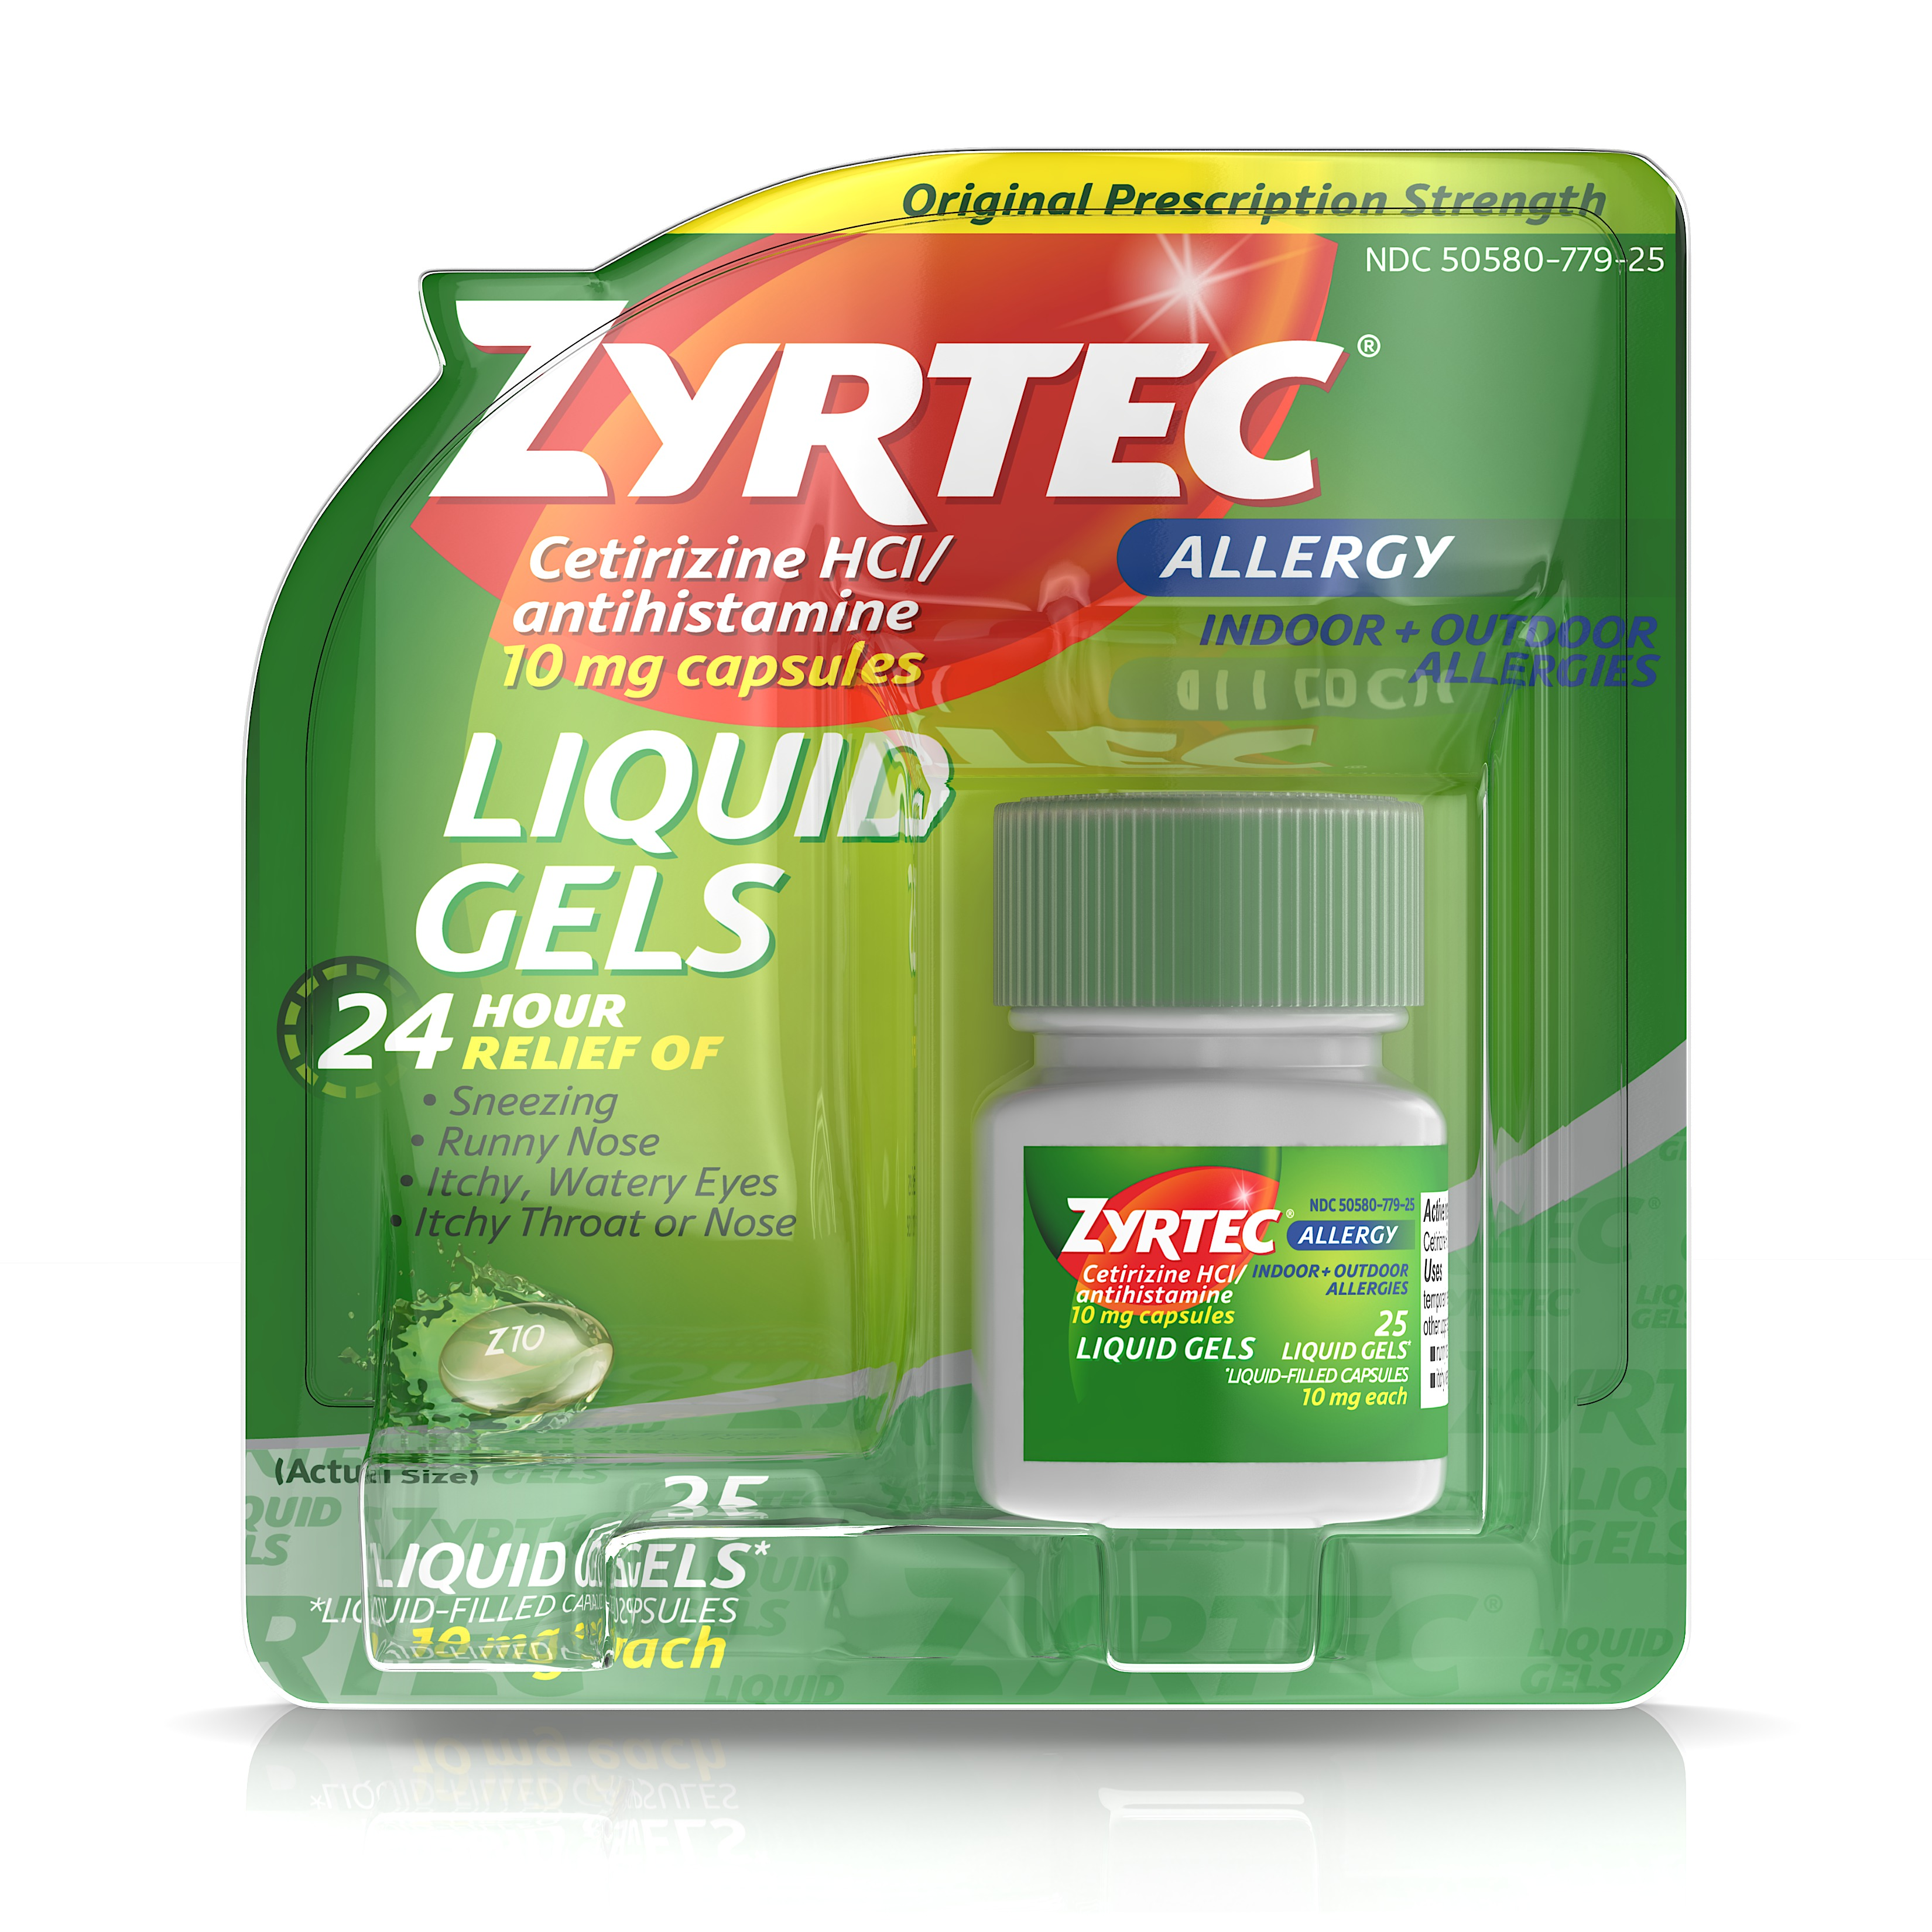 Zyrtec 24 Hour Indoor & Outdoor Allergy Medicine Liquid Gels With Cetirizine, 25 Count